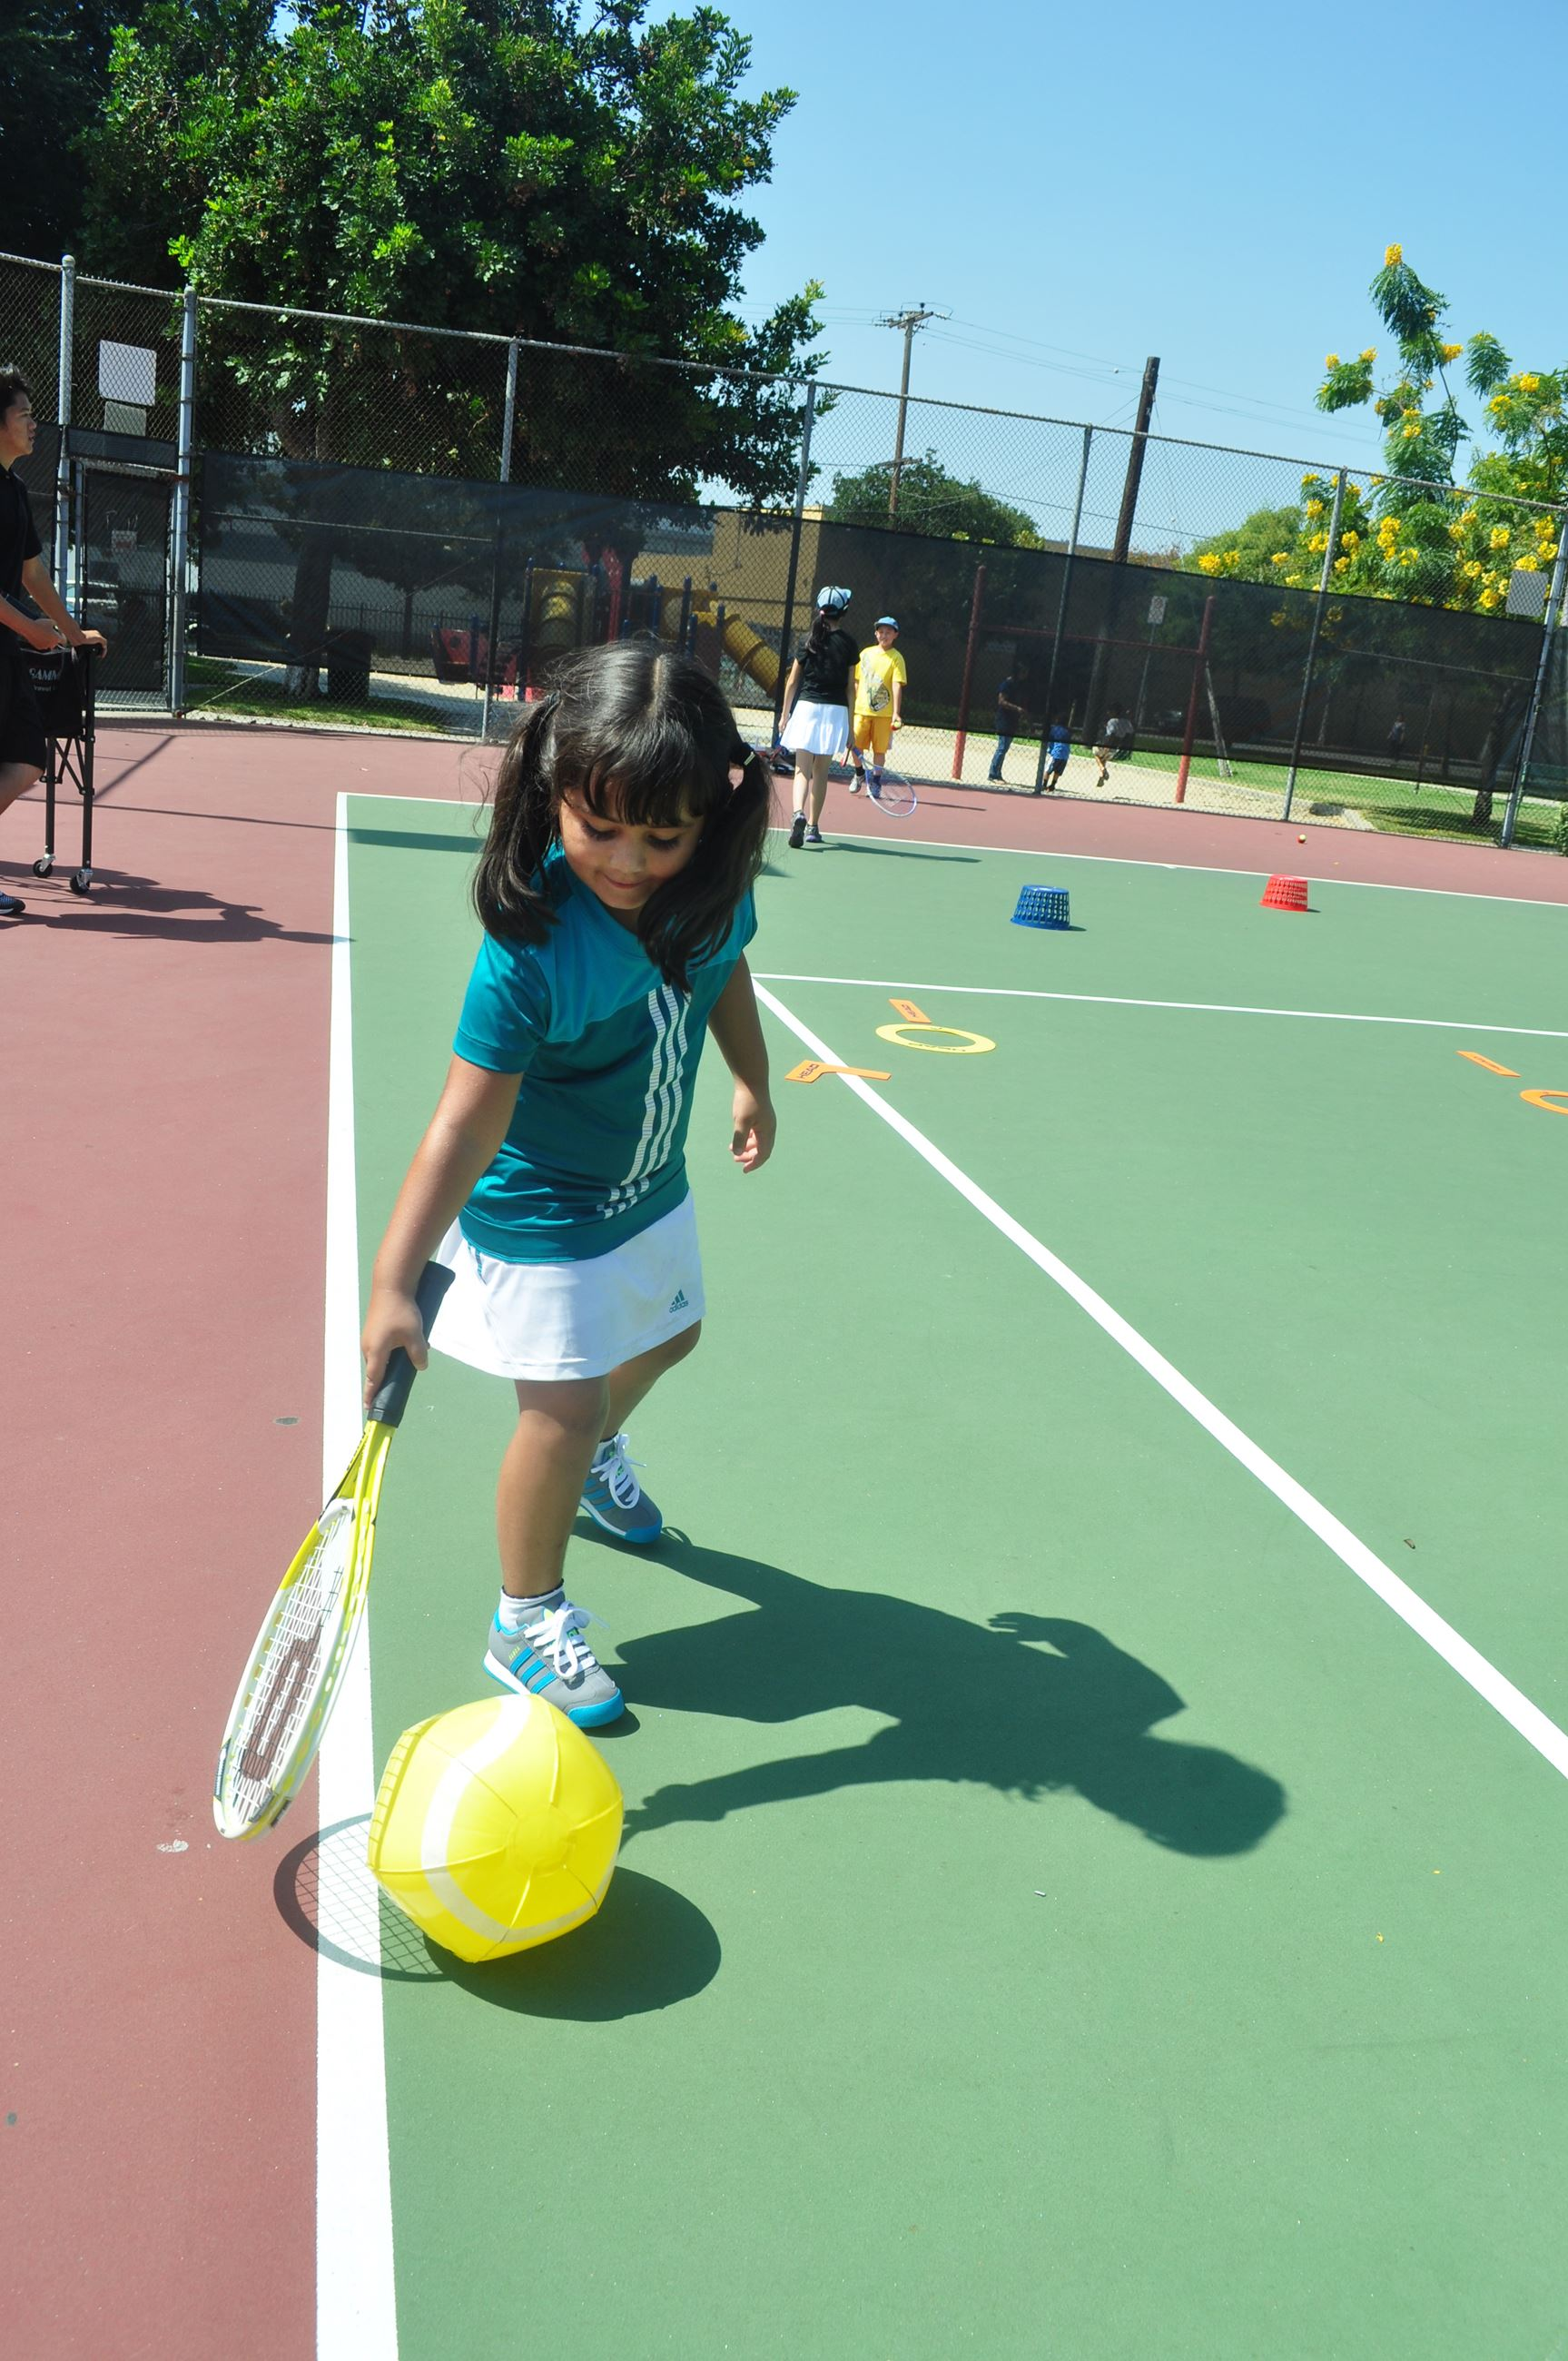 Little girl playing on a tennis court.